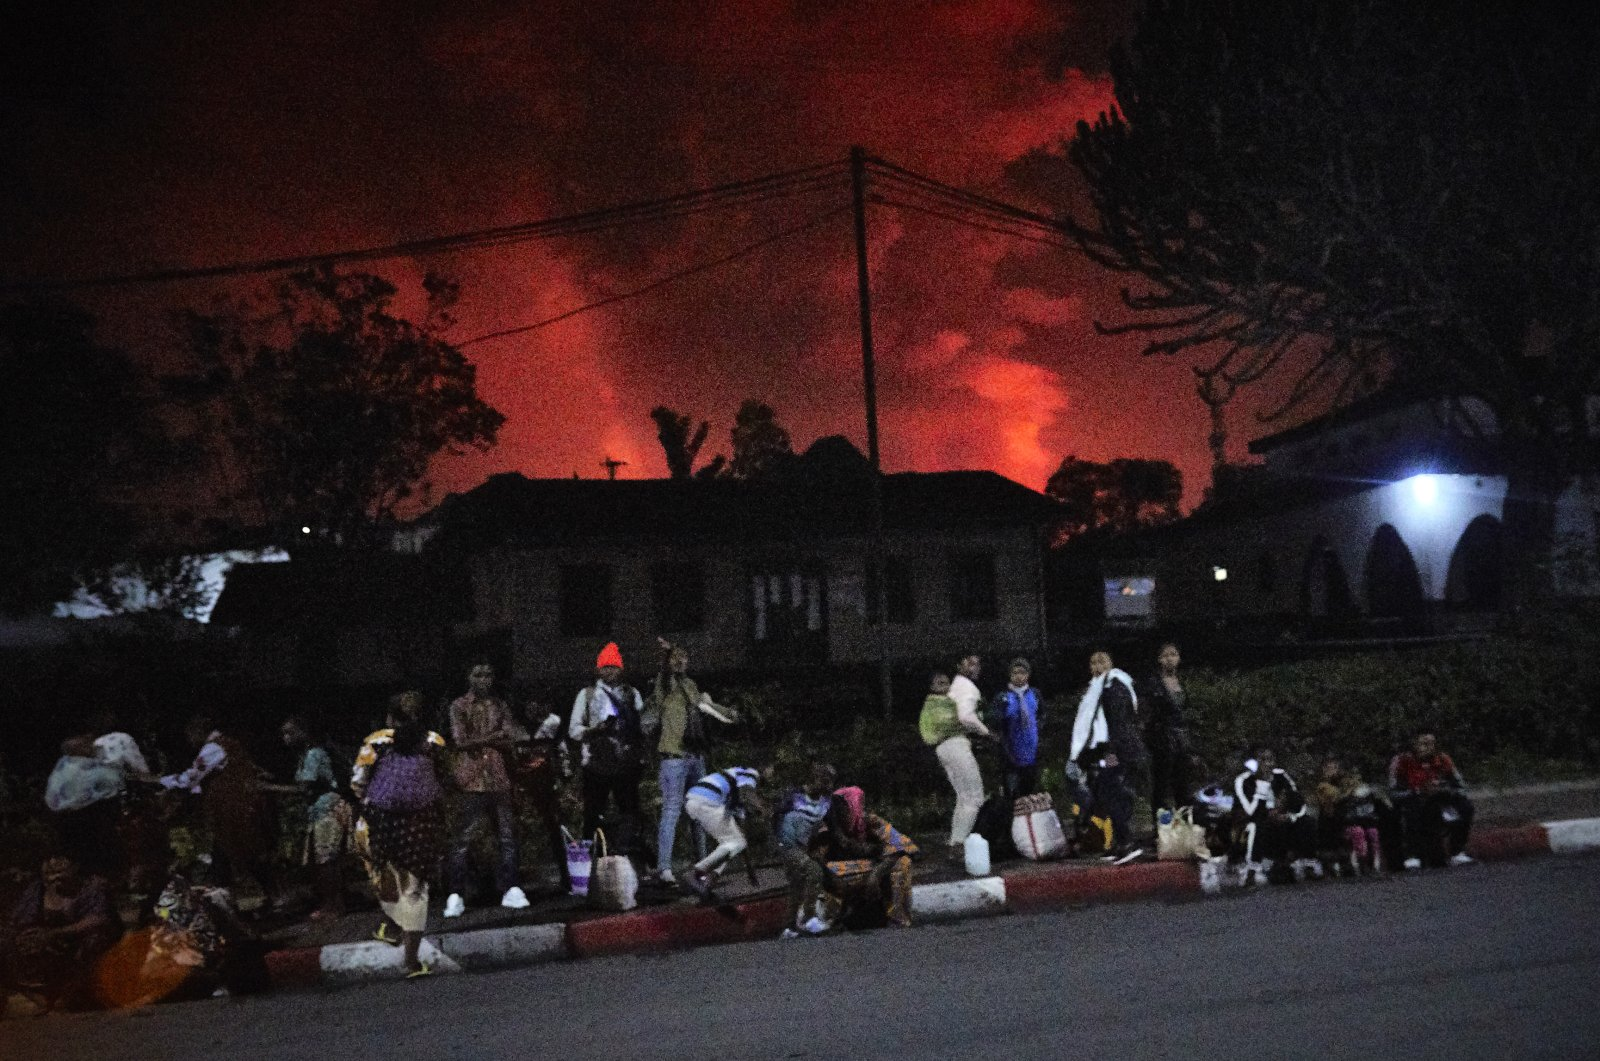 Congolese residents flee from Mount Nyiragongo as it erupts over their city Goma, in the Democratic Republic of the Congo, May 22, 2021. (EPA-EFE Photo)